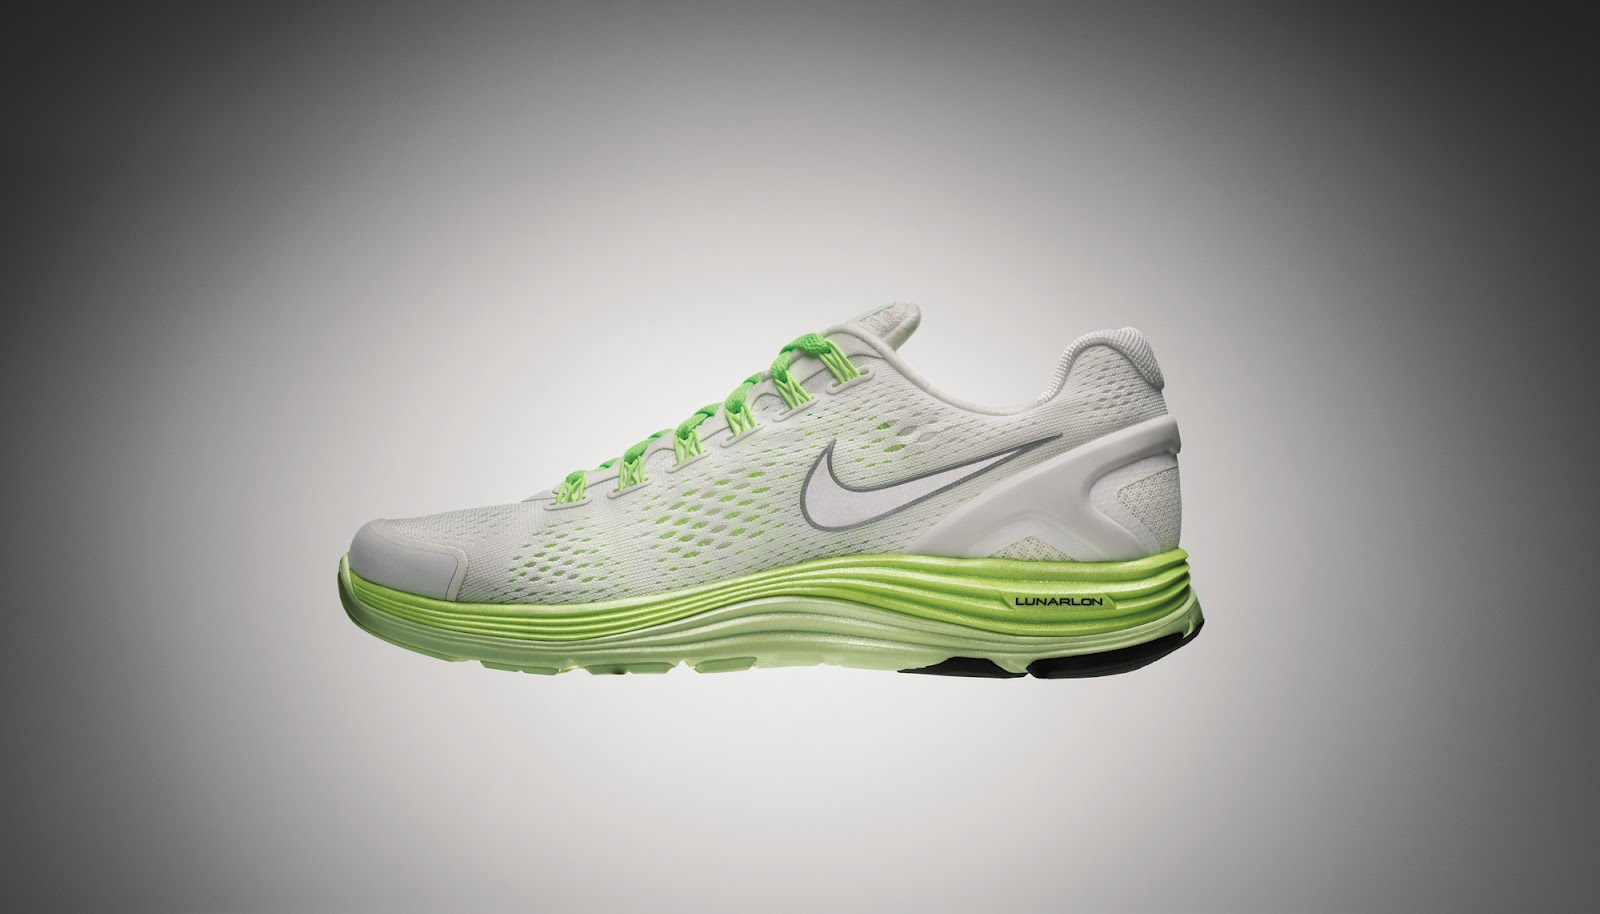 size 40 2d3db 1d688 This summer when the greatest athletes in the world compete for career  defining victories, runners everywhere can hit the street and log miles  with the same ...